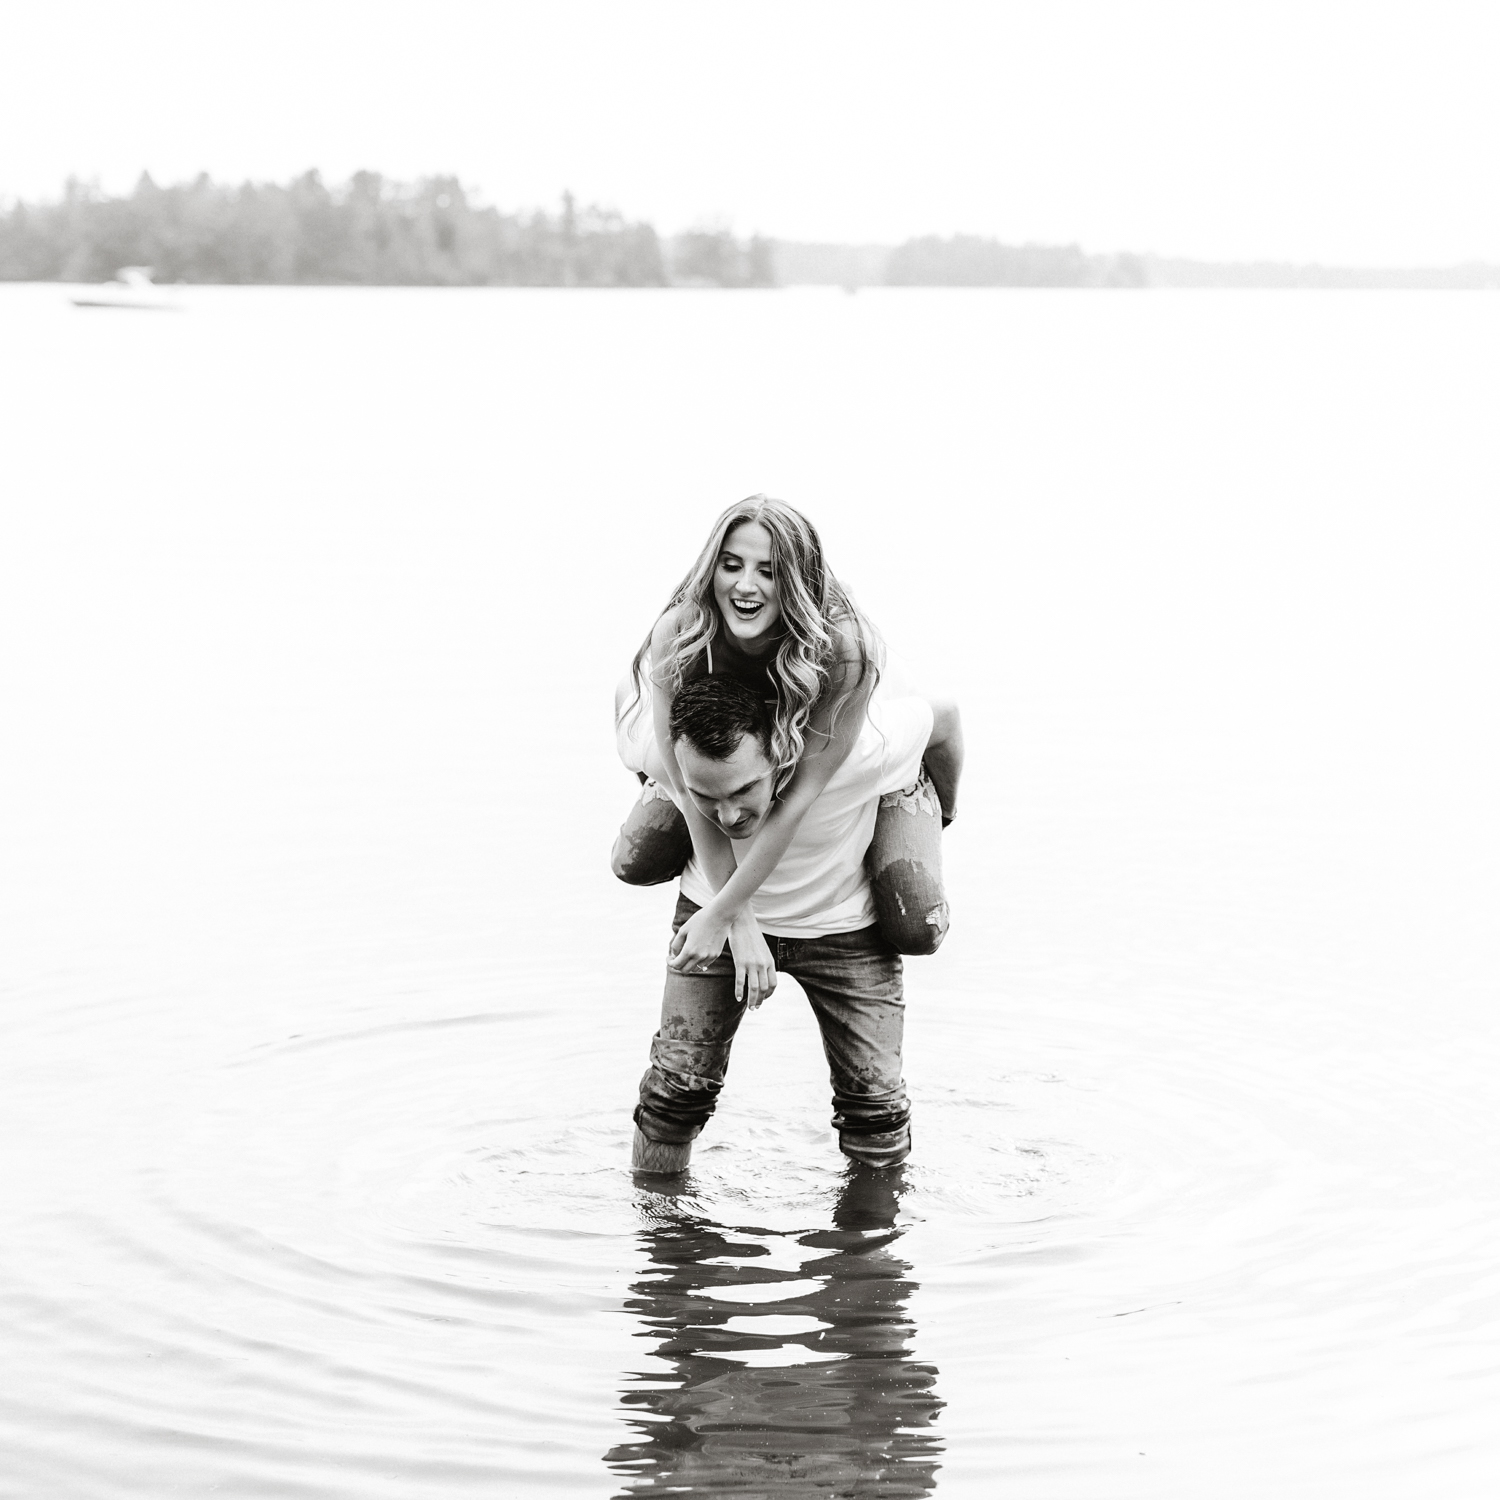 lake portraits